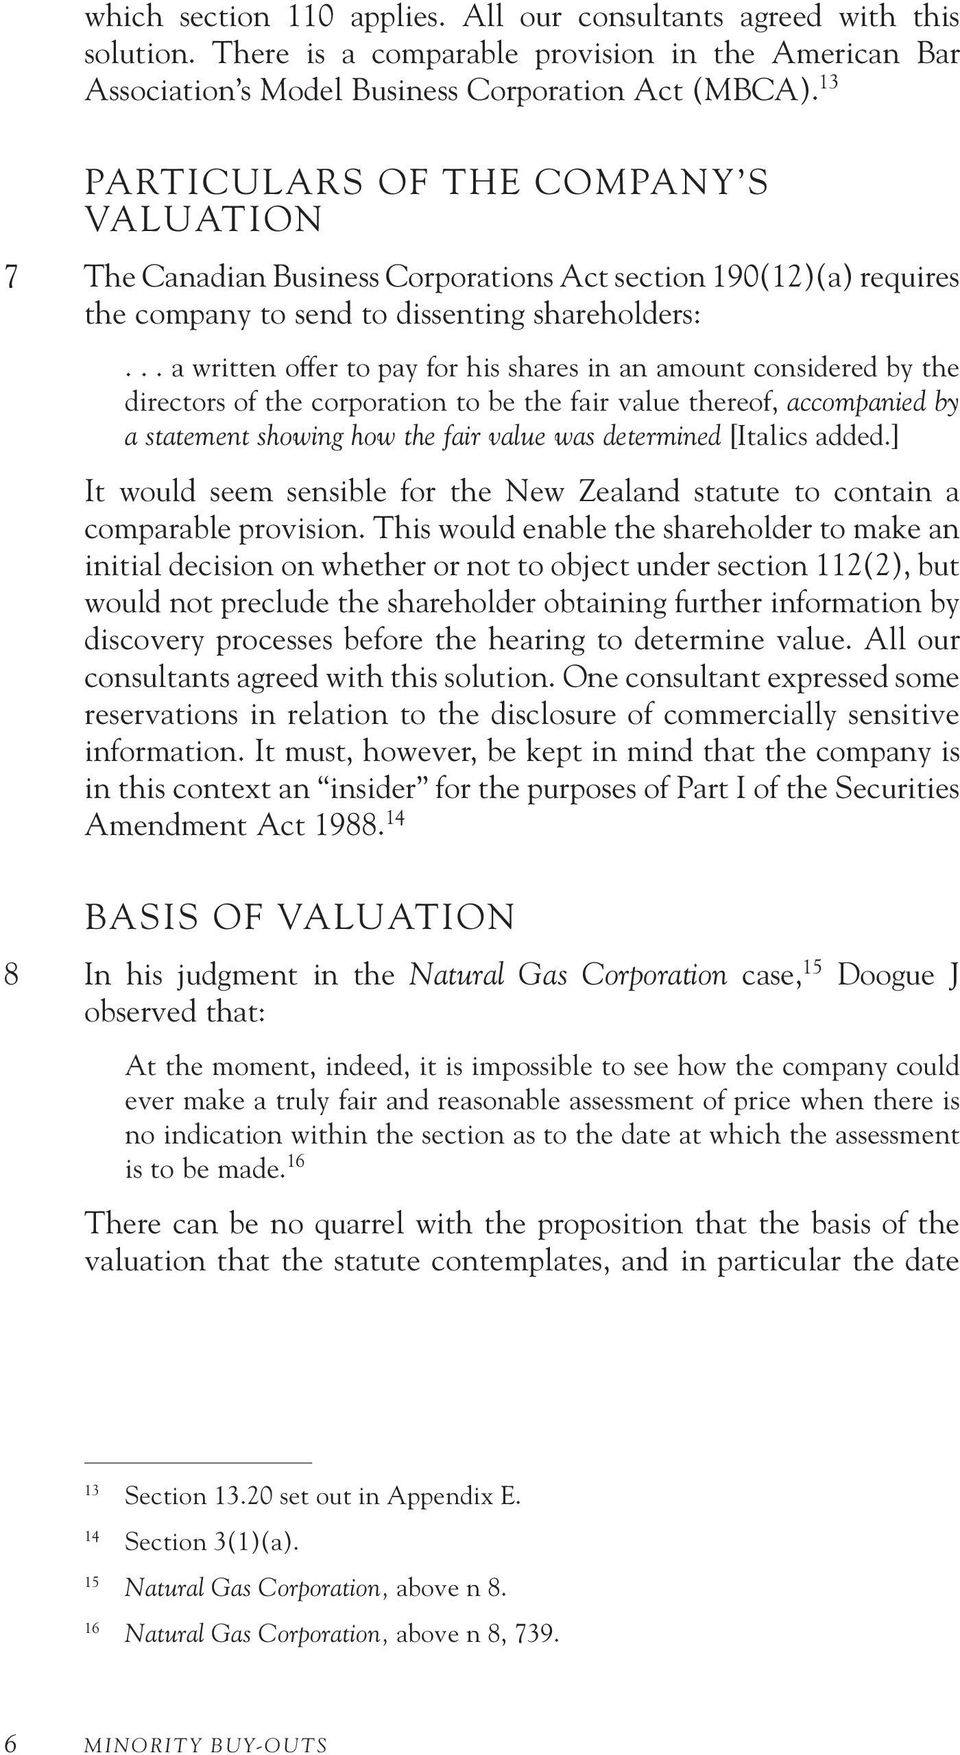 .. a written offer to pay for his shares in an amount considered by the directors of the corporation to be the fair value thereof, accompanied by a statement showing how the fair value was determined